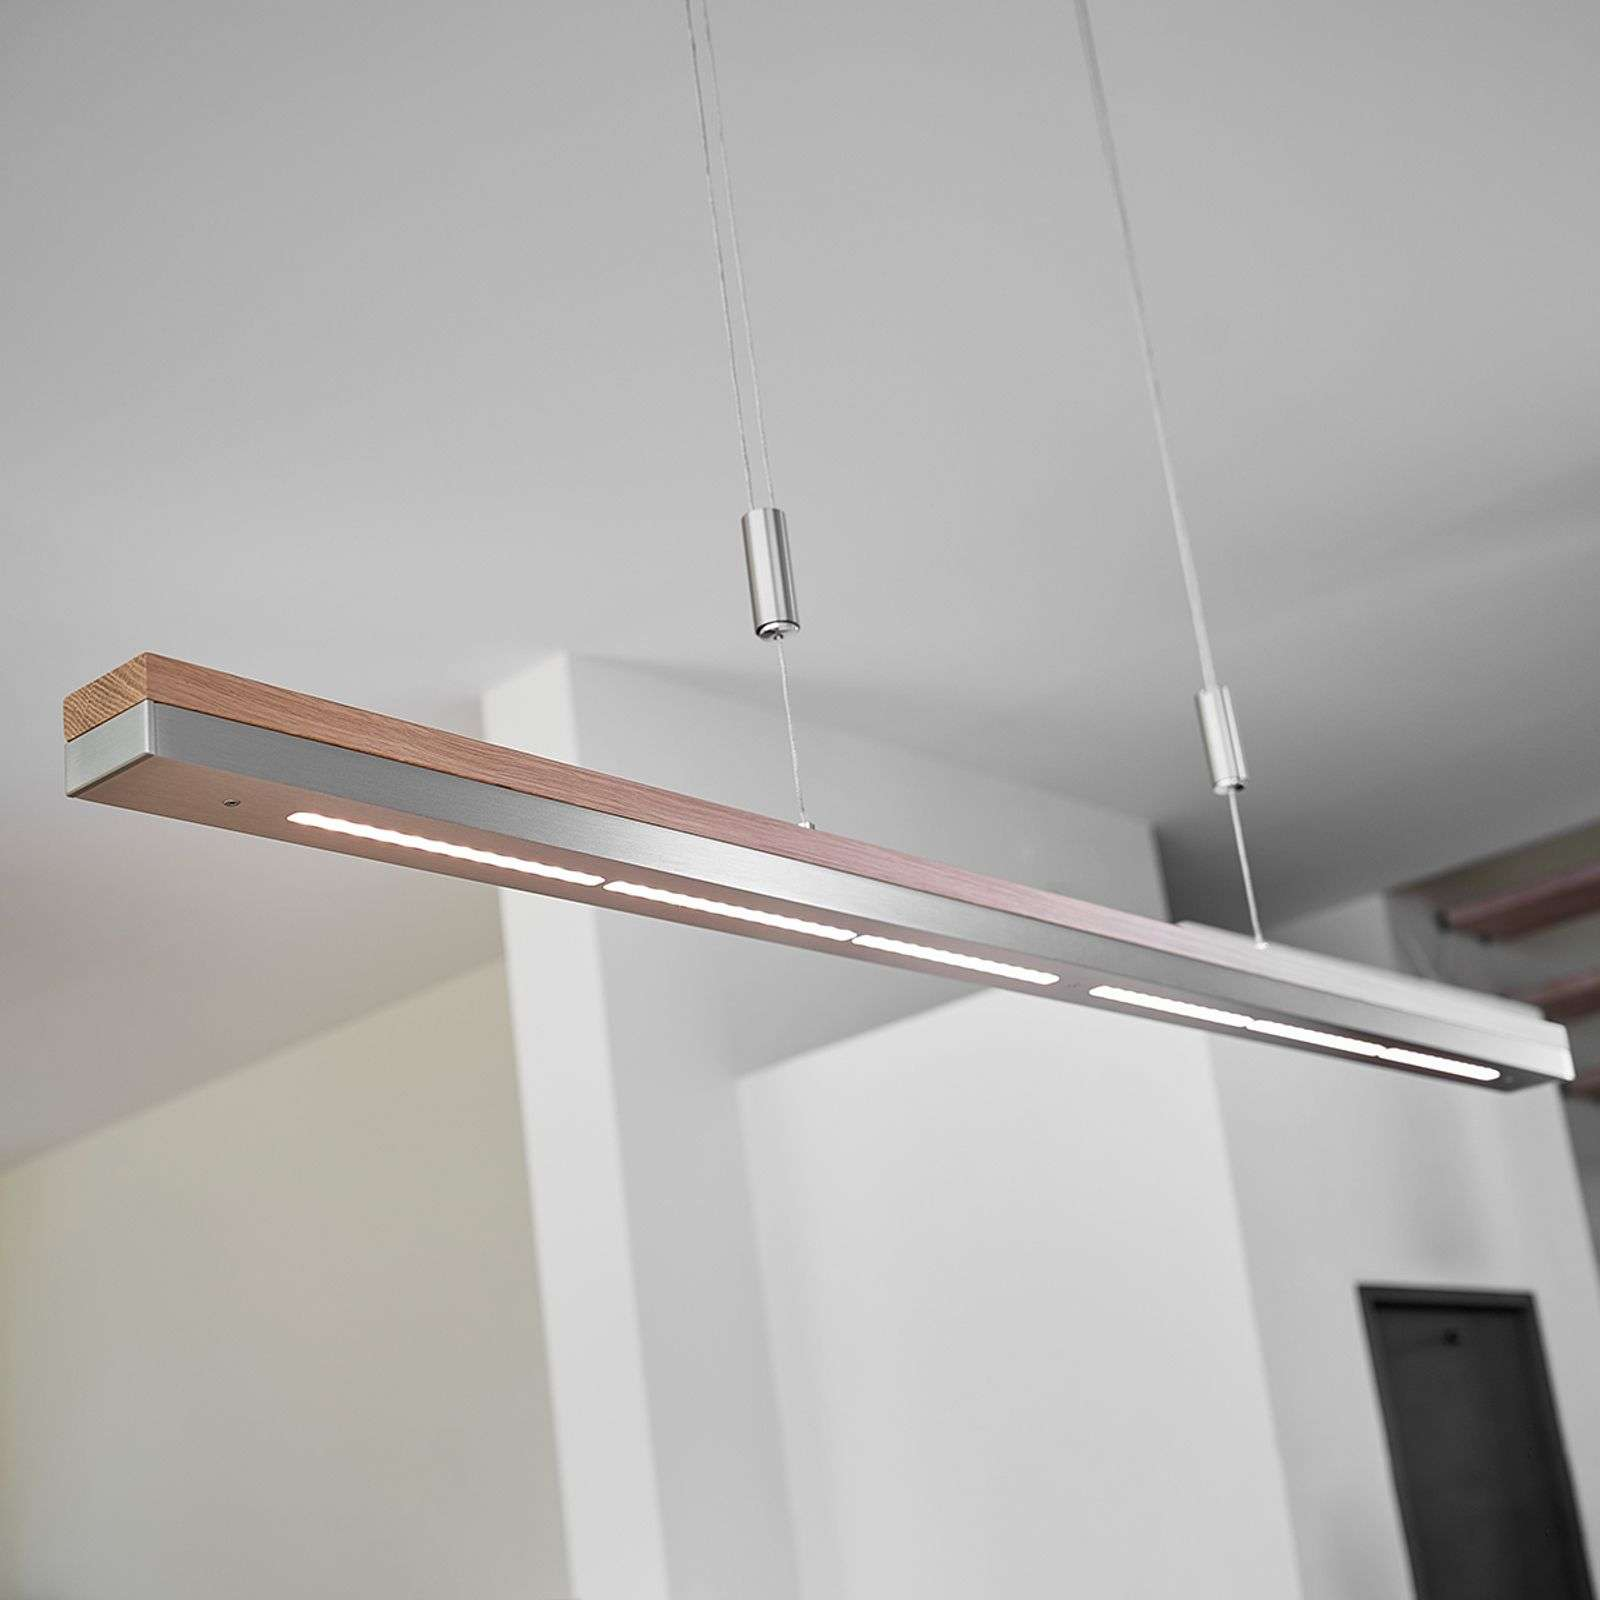 Suspension Elna avec LED dimmables, 118 cm